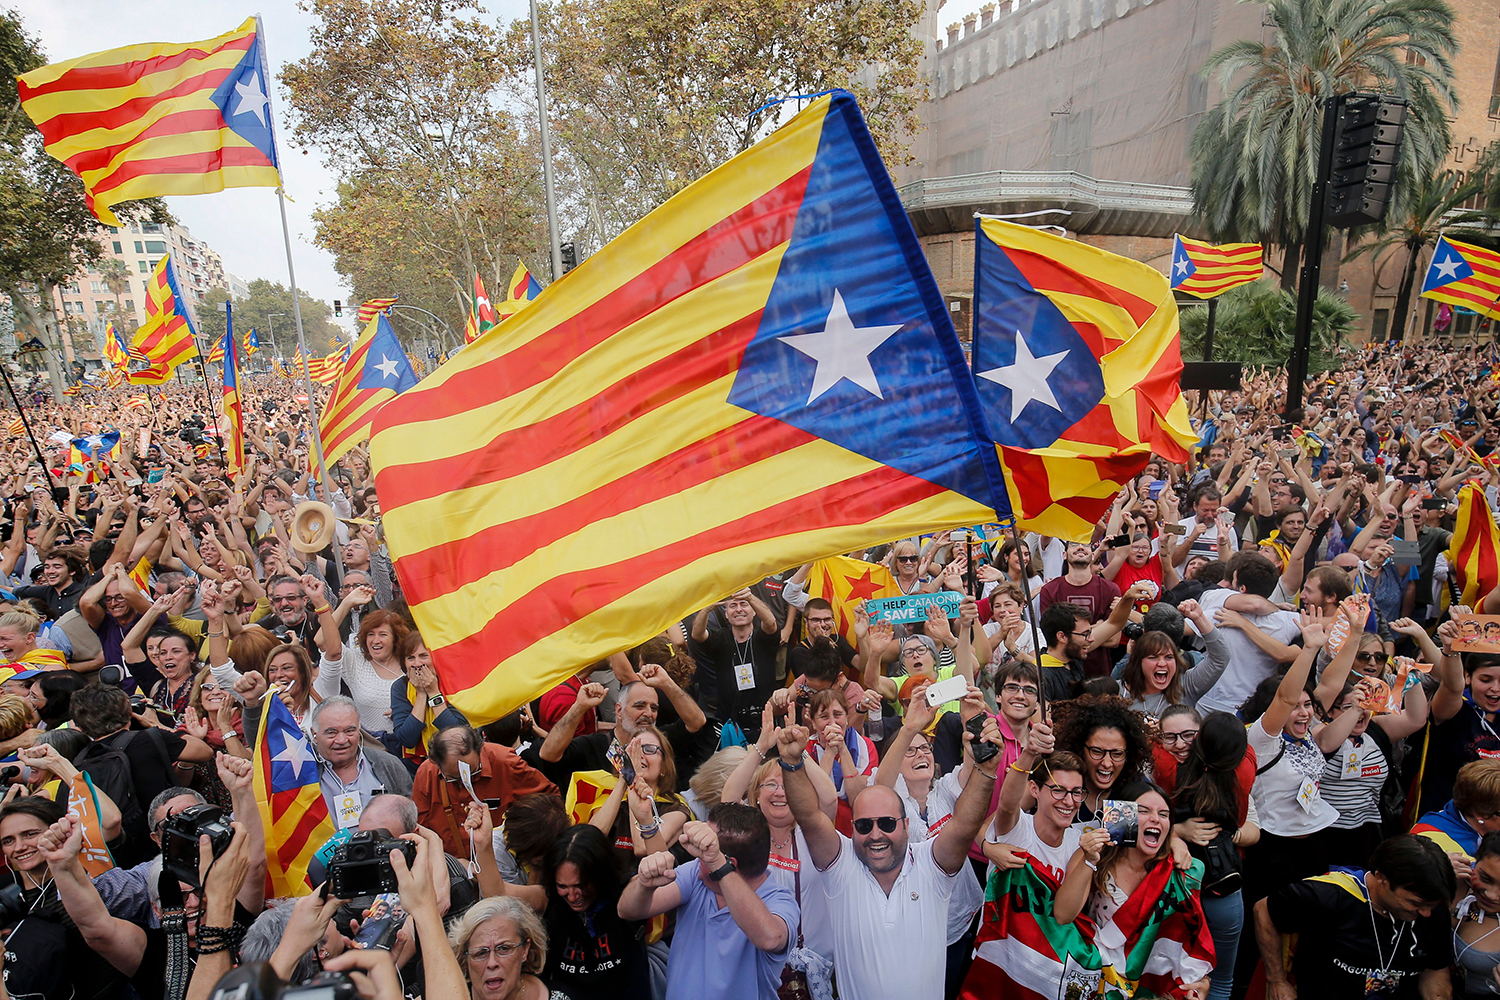 TOPSHOT - People celebrate after Catalonia's parliament voted to declare independence from Spain in Barcelona on October 27, 2017.  Catalonia's parliament voted to declare independence from Spain and proclaim a republic, just as Madrid is poised to impose direct rule on the region to stop it in its tracks. A motion declaring independence was approved with 70 votes in favour, 10 against and two abstentions, with Catalan opposition MPs walking out of the 135-seat chamber before the vote in protest at a declaration unlikely to be given official recognition.  / AFP PHOTO / PAU BARRENA        (Photo credit should read PAU BARRENA/AFP/Getty Images)